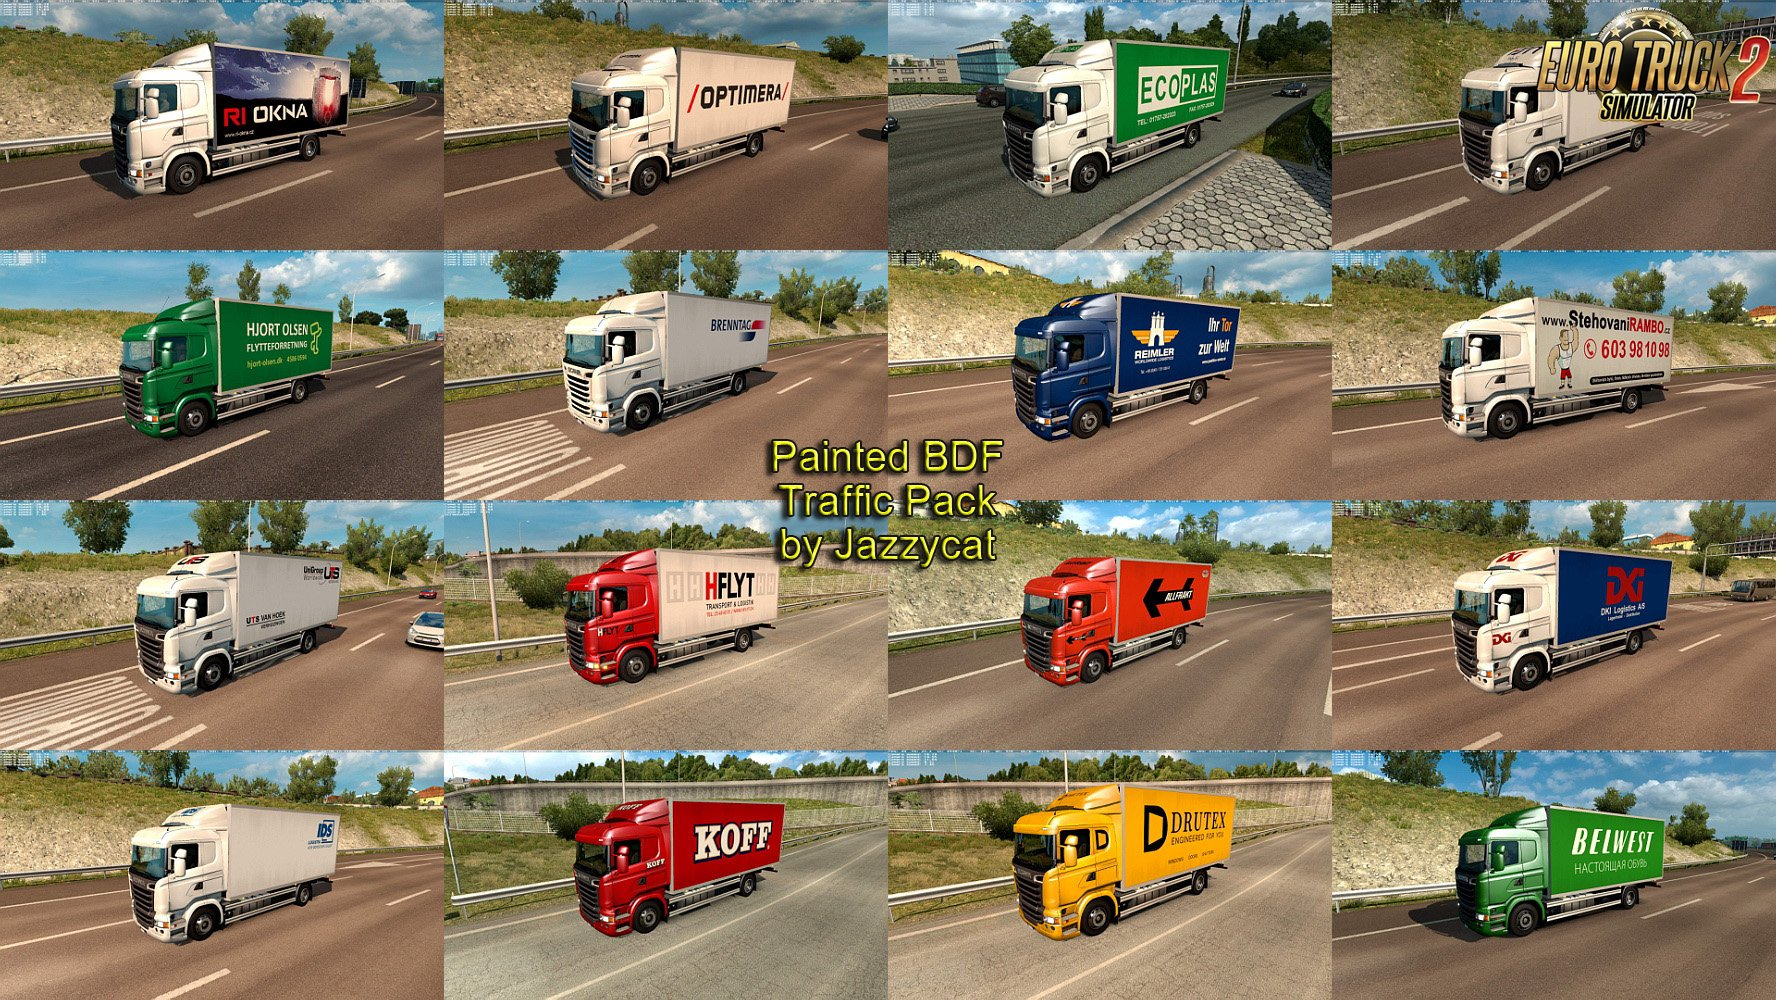 Painted BDF Traffic Pack v2.7 by Jazzycat